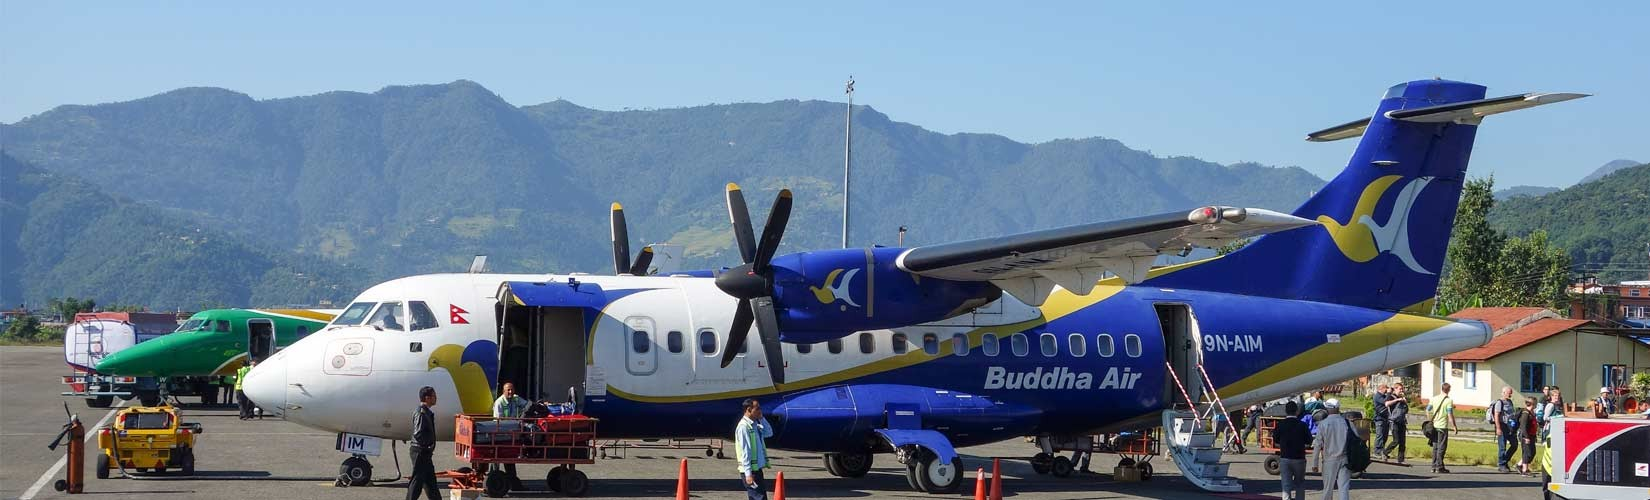 Kathmandu Pokhara Flight Ticket Booking